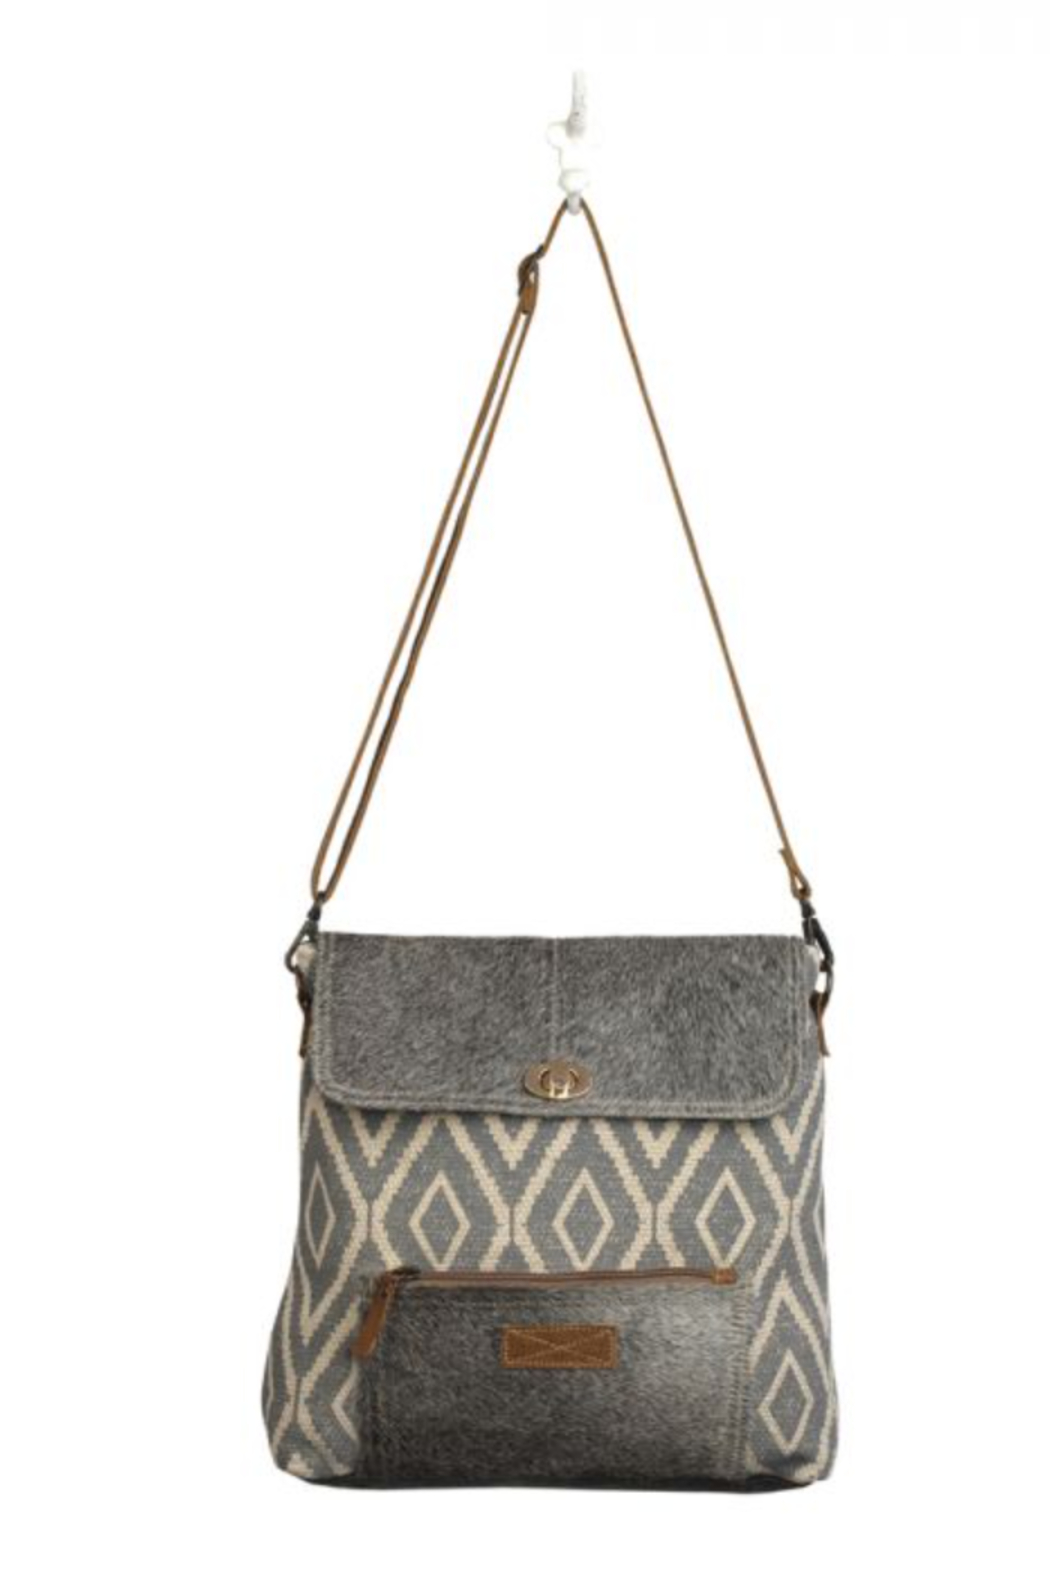 MarkWEST-Myra Bag Grainy Gray Shoulder Bag - Main Image